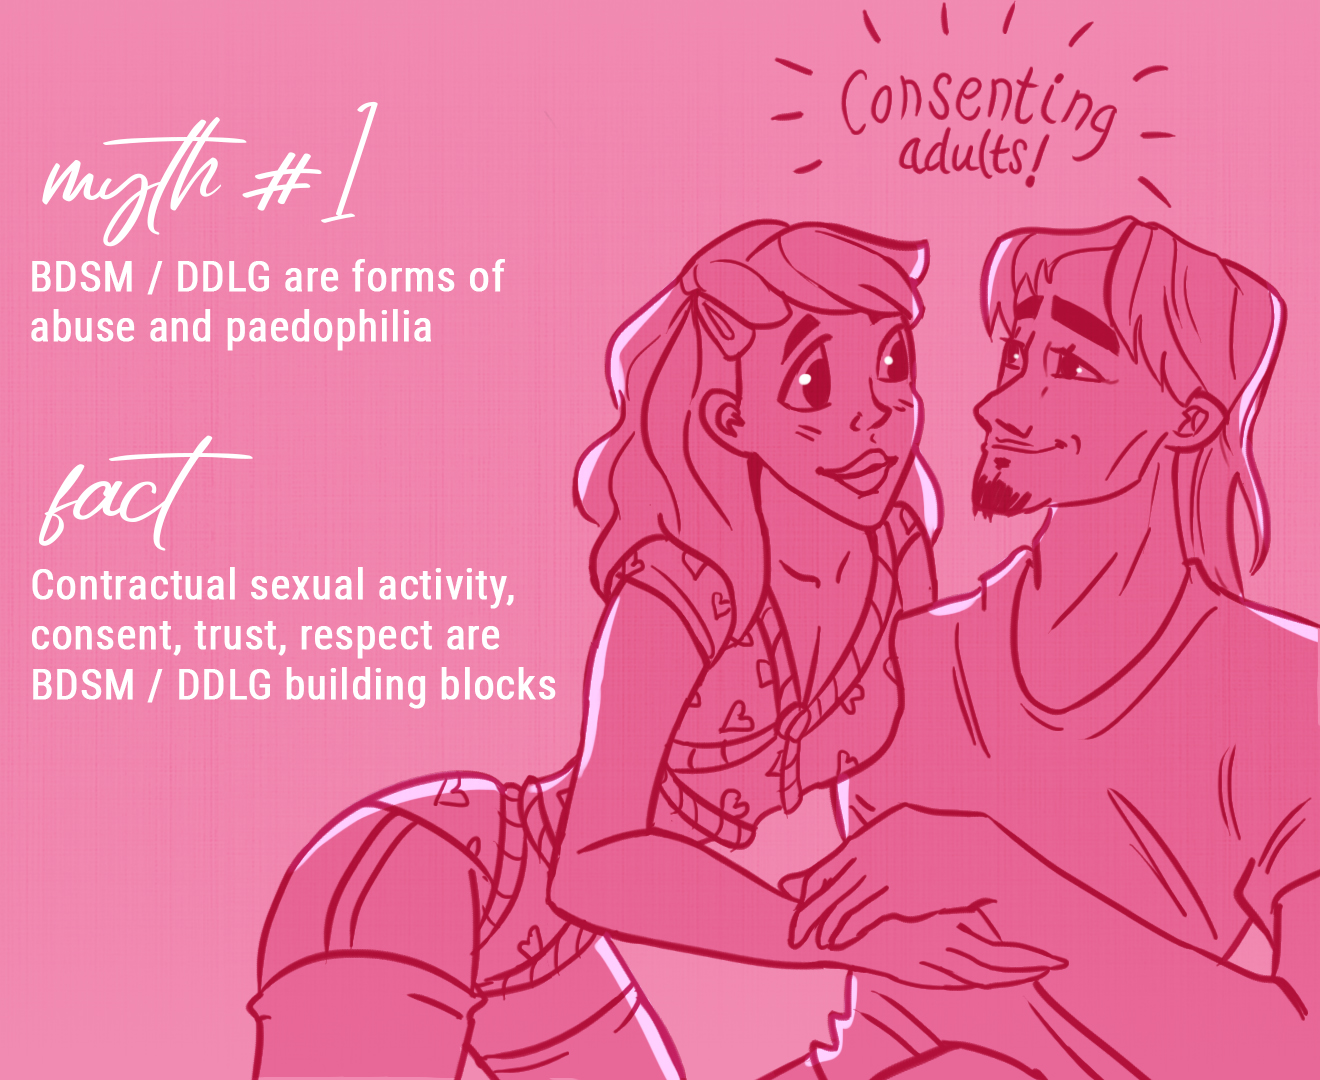 A Whole New World: 5 Common Myths About BDSM / DDLG Debunked